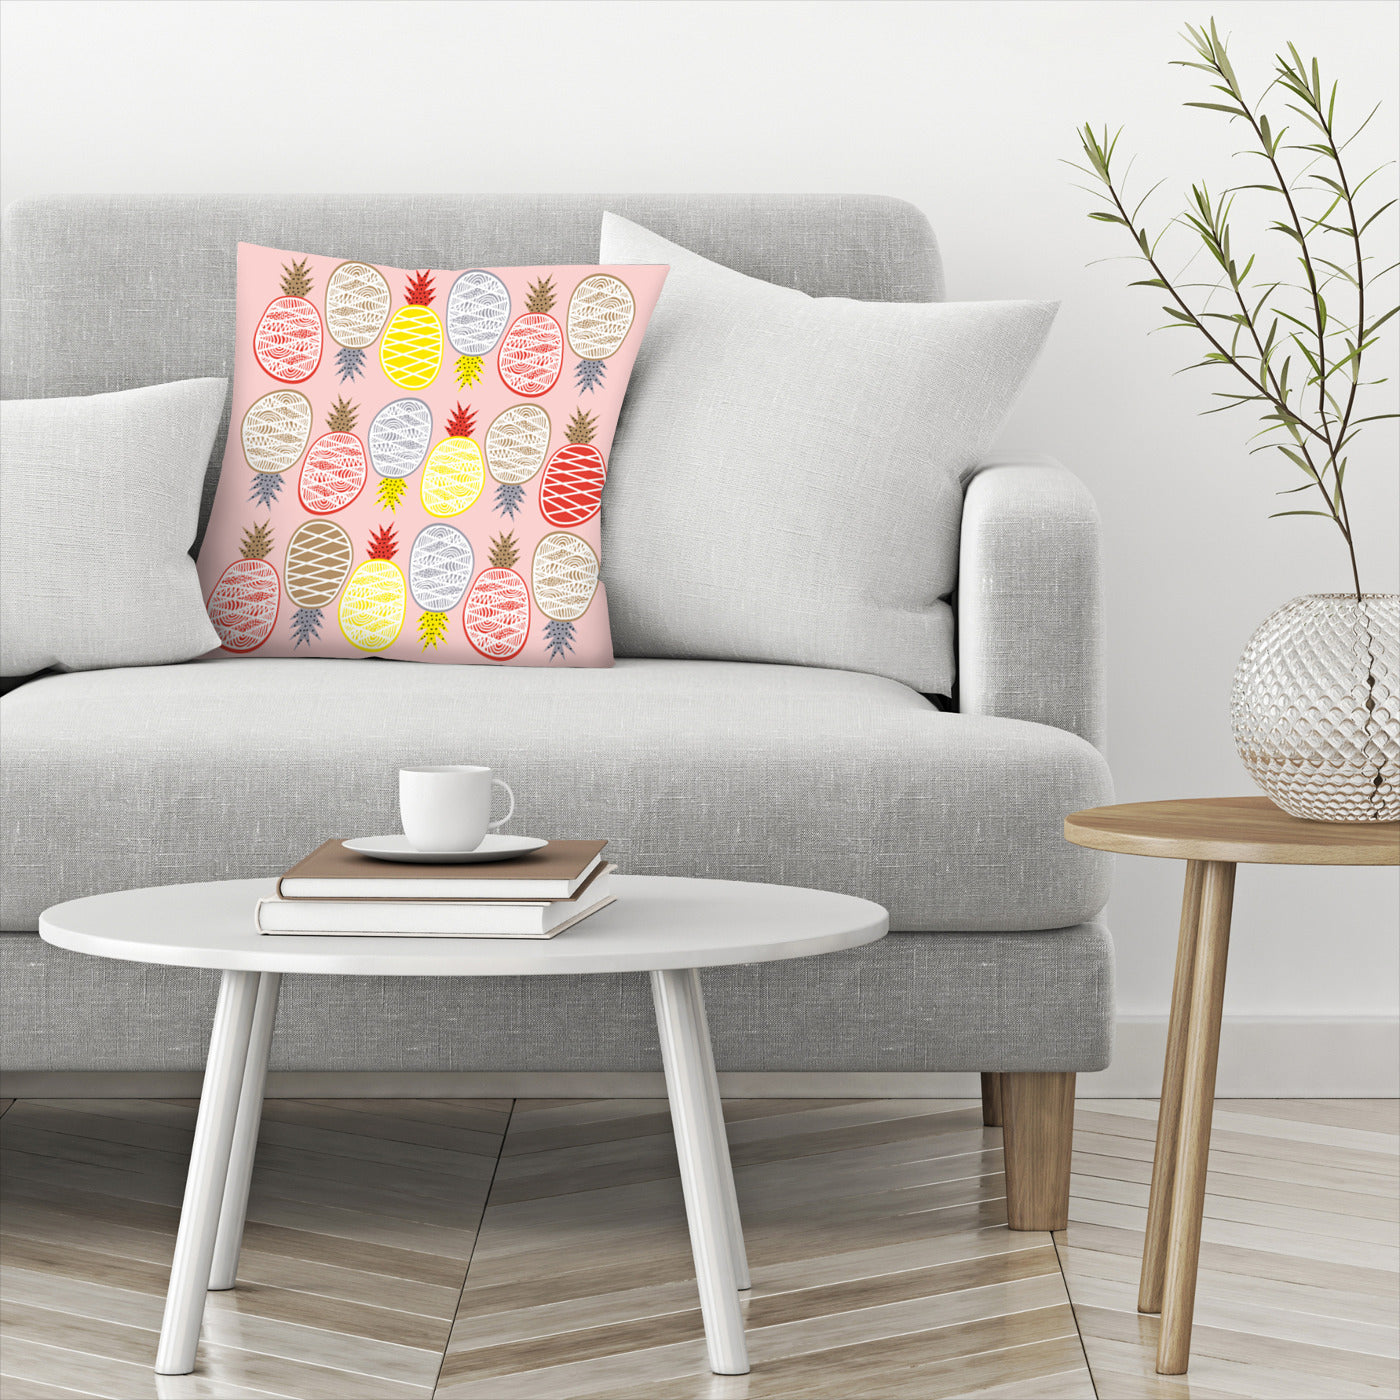 Pineapple I by Susana Paz Decorative Pillow - Decorative Pillow - Americanflat